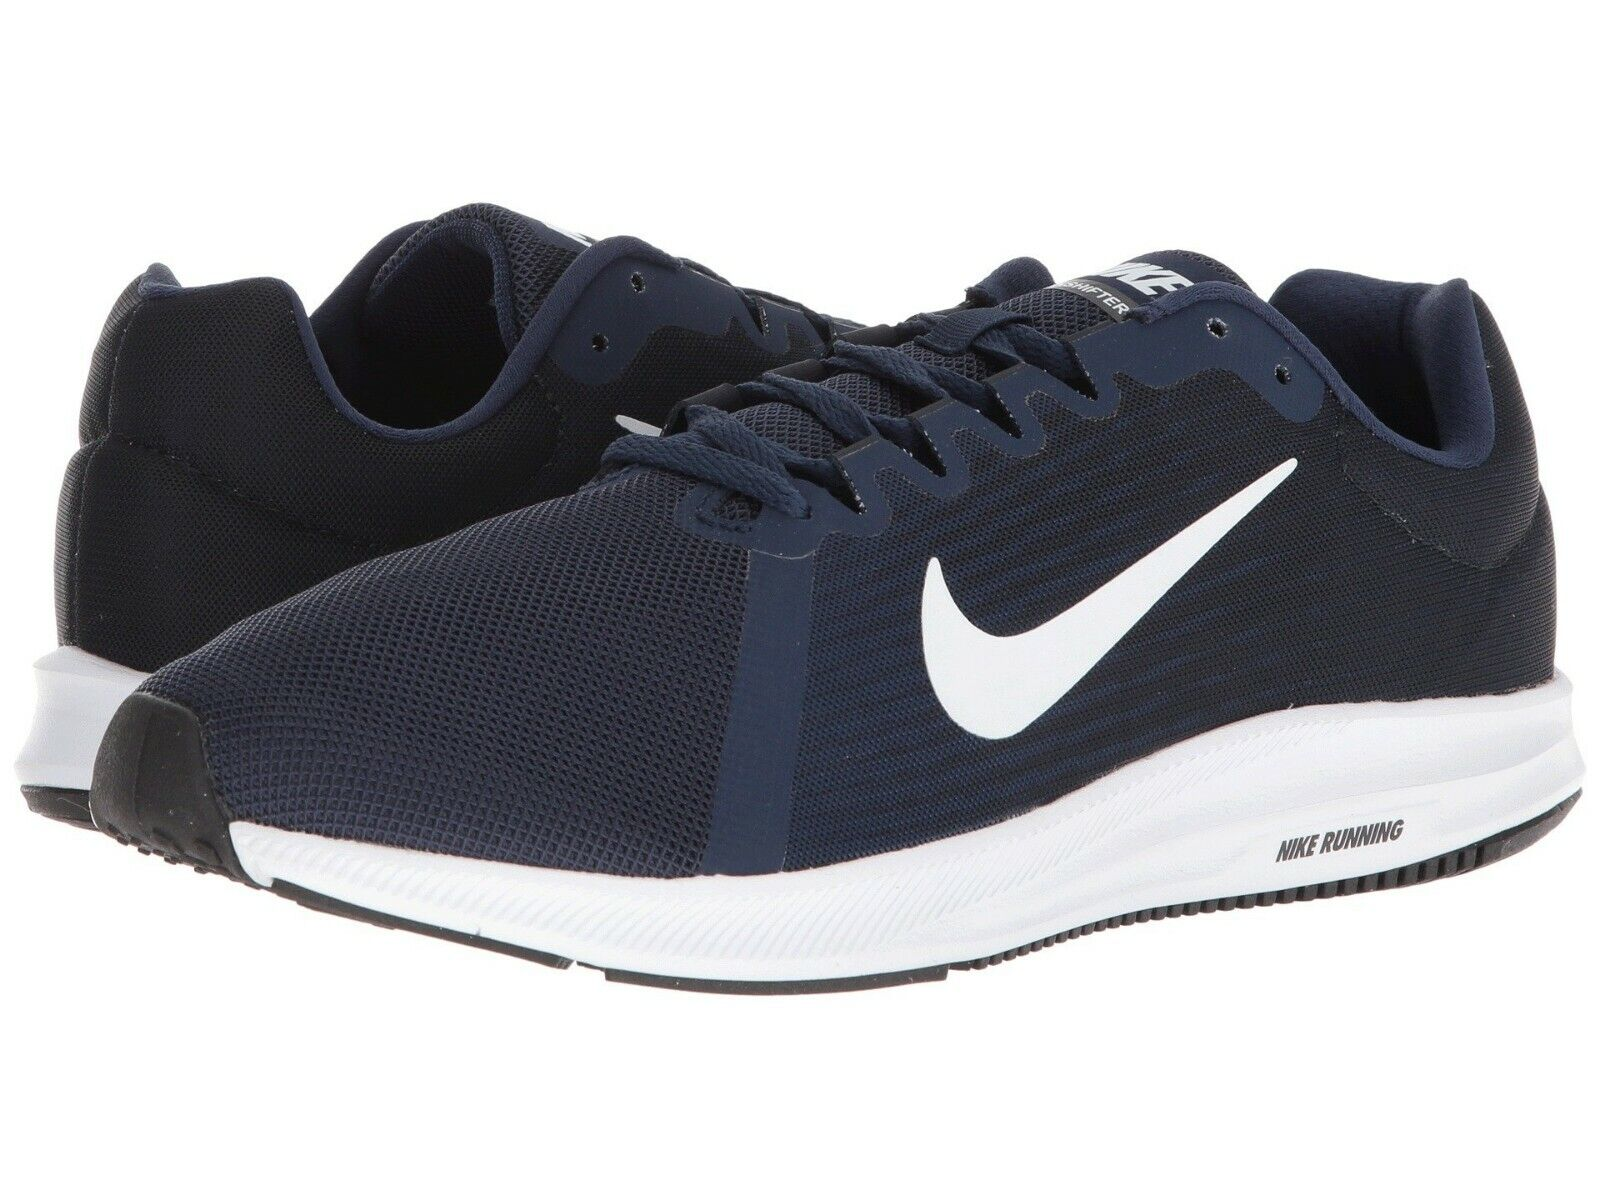 Nike DOWNSHIFTER 8 Mens Midnight Navy White 908984-400 Running shoes